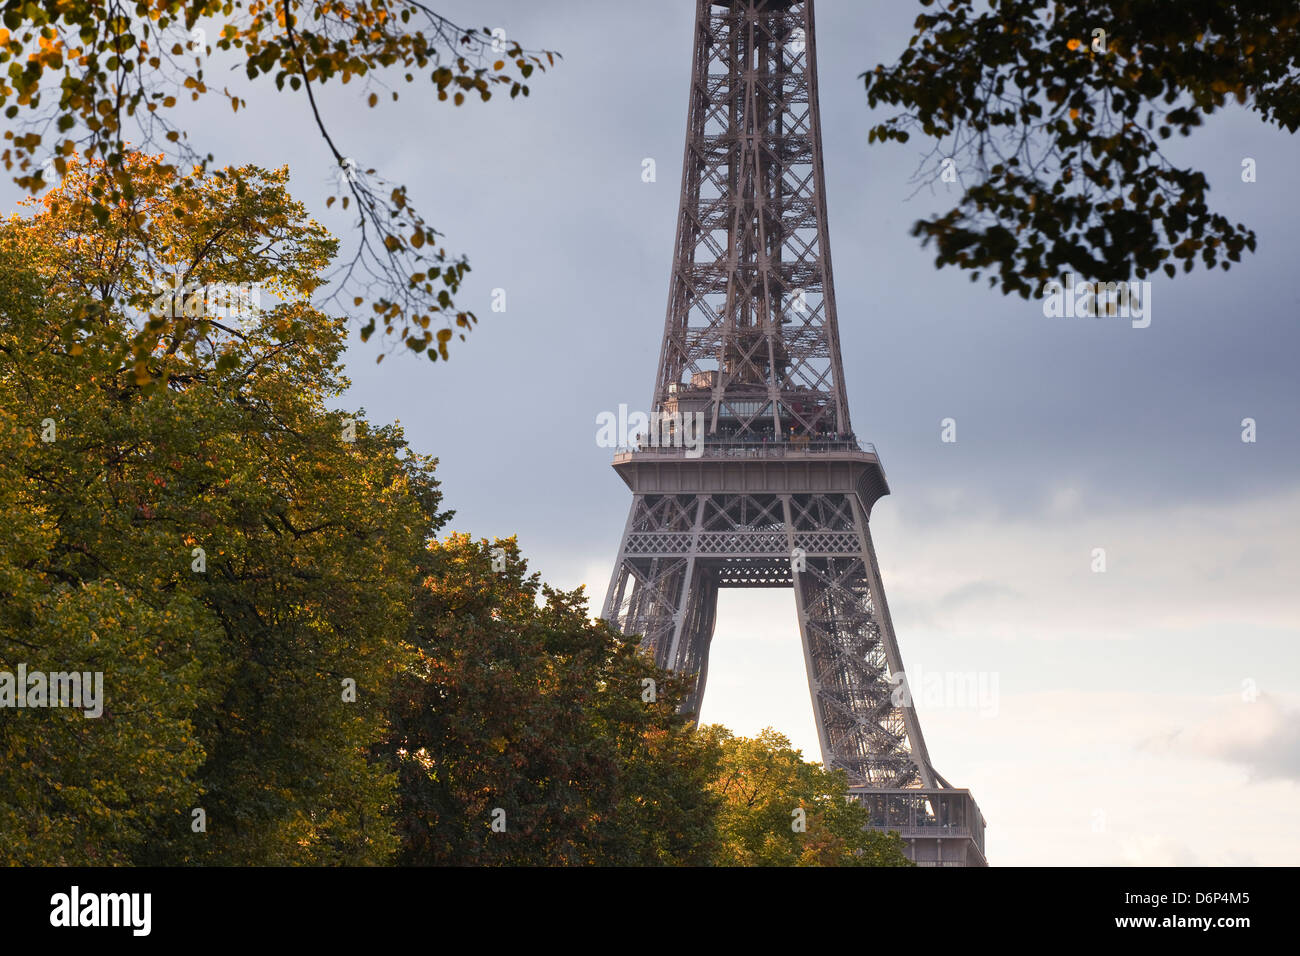 The Eiffel Tower from Champ de Mars, Paris, France, Europe - Stock Image